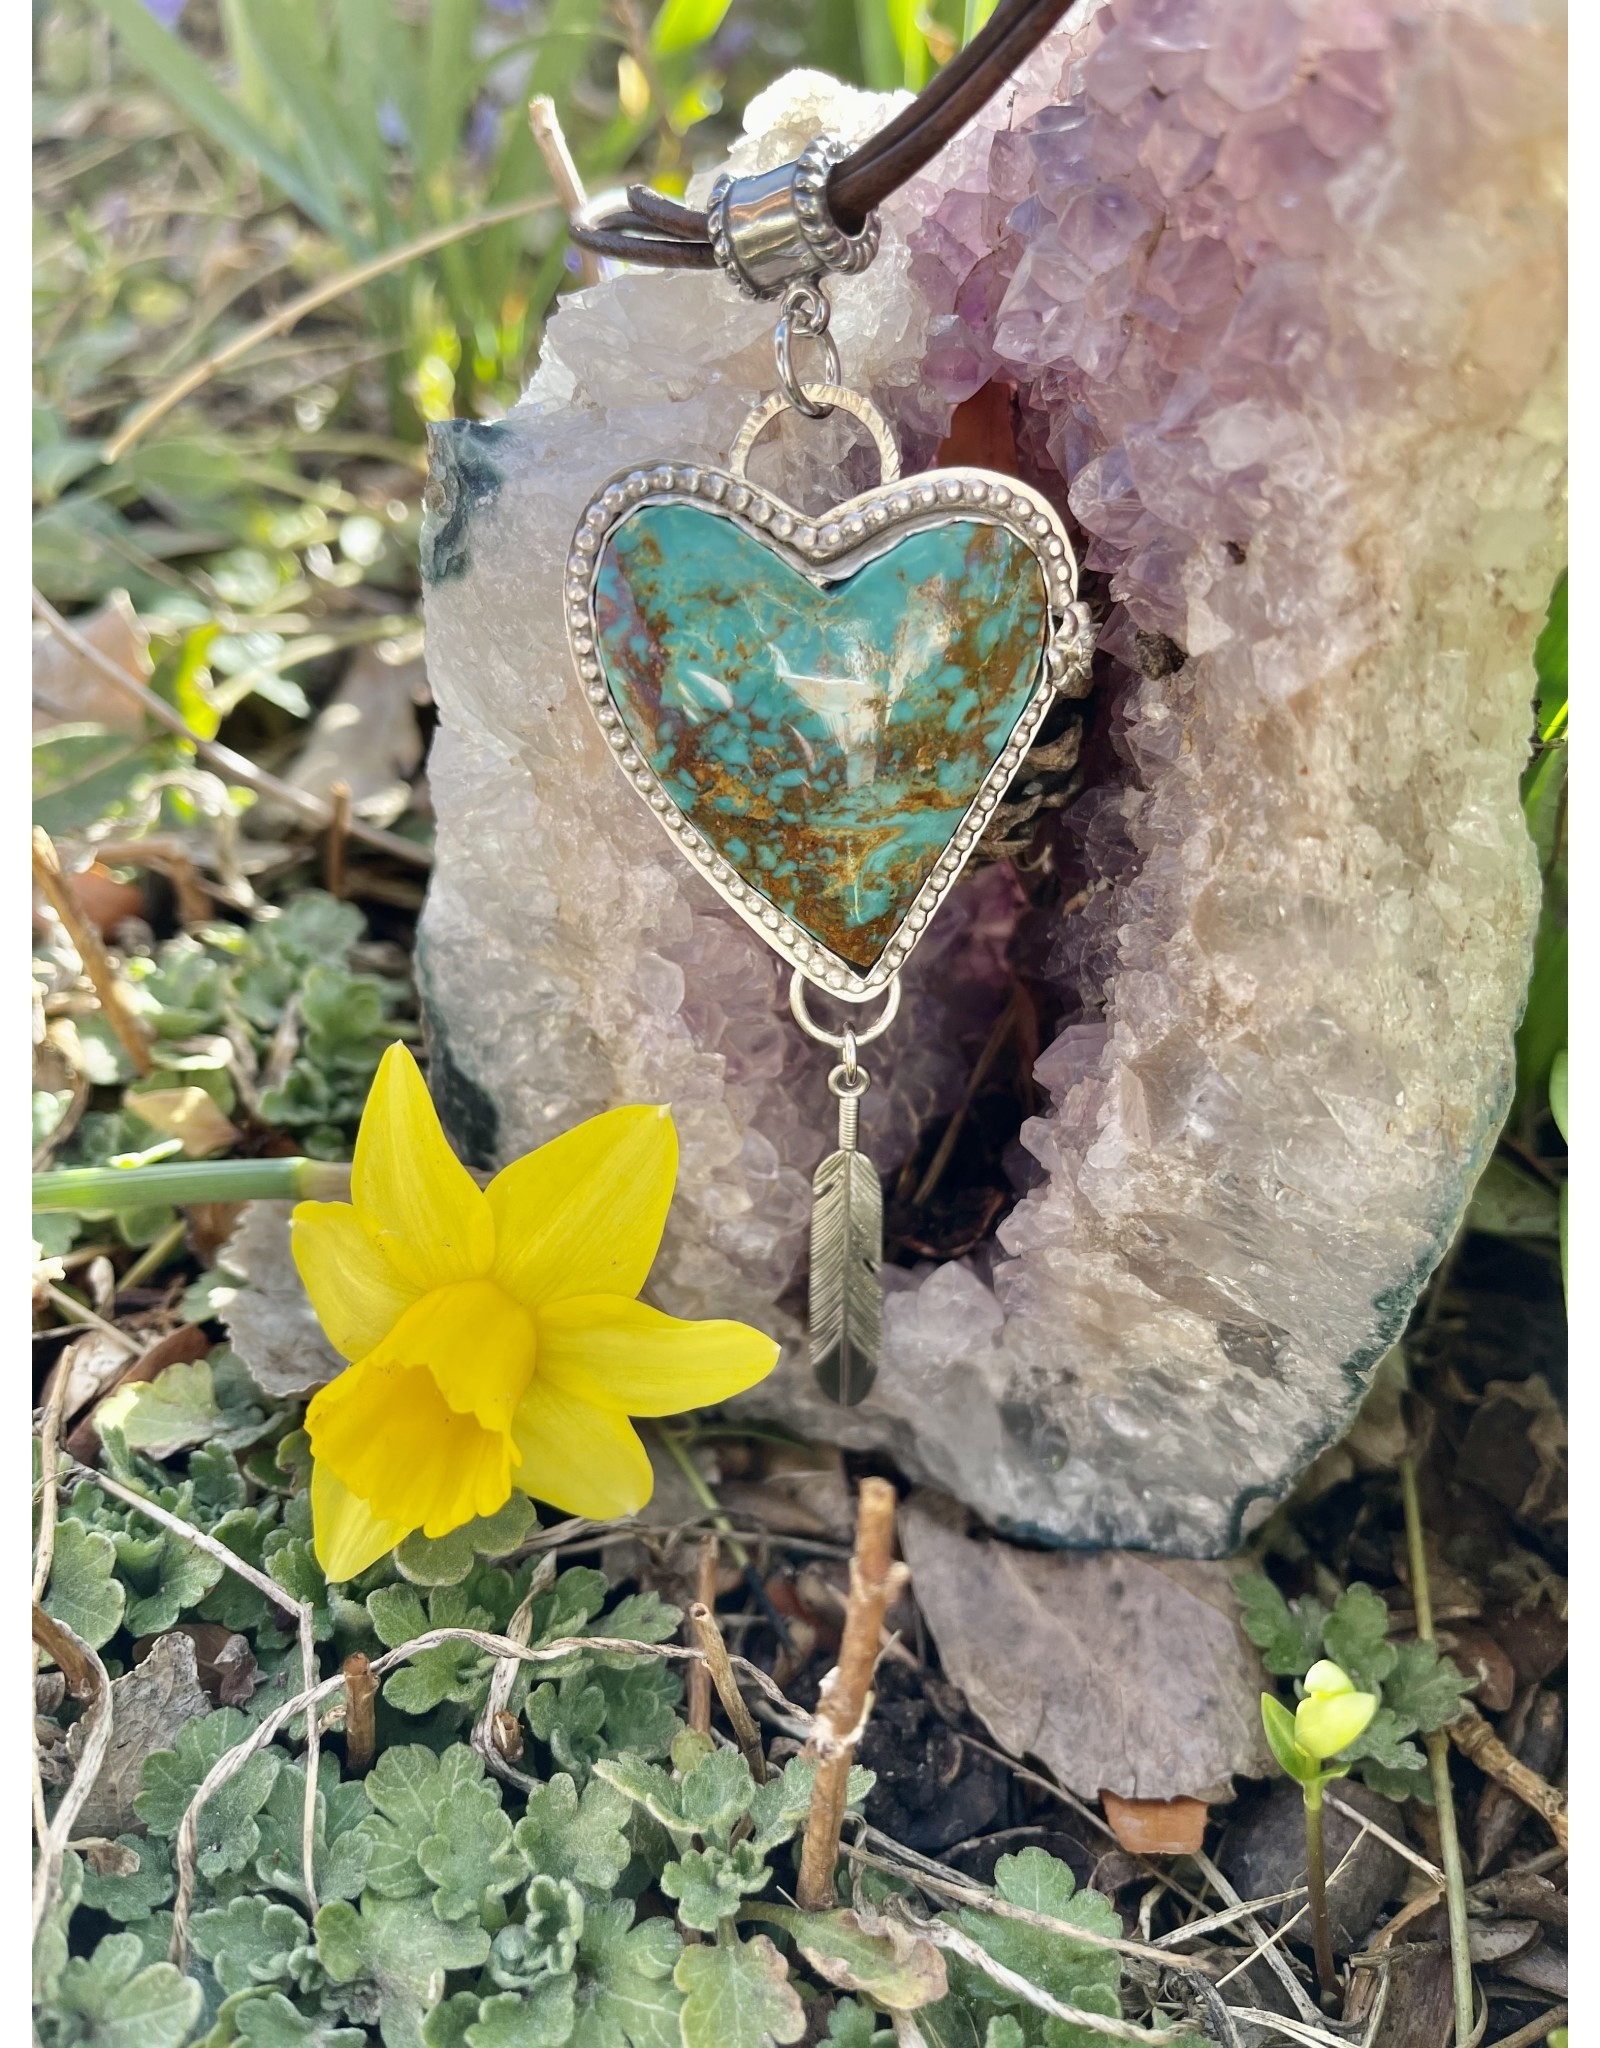 Annette Colby - Jeweler Kingman Turquoise Heart Pendant Feather Rose Necklace  by Annette Colby